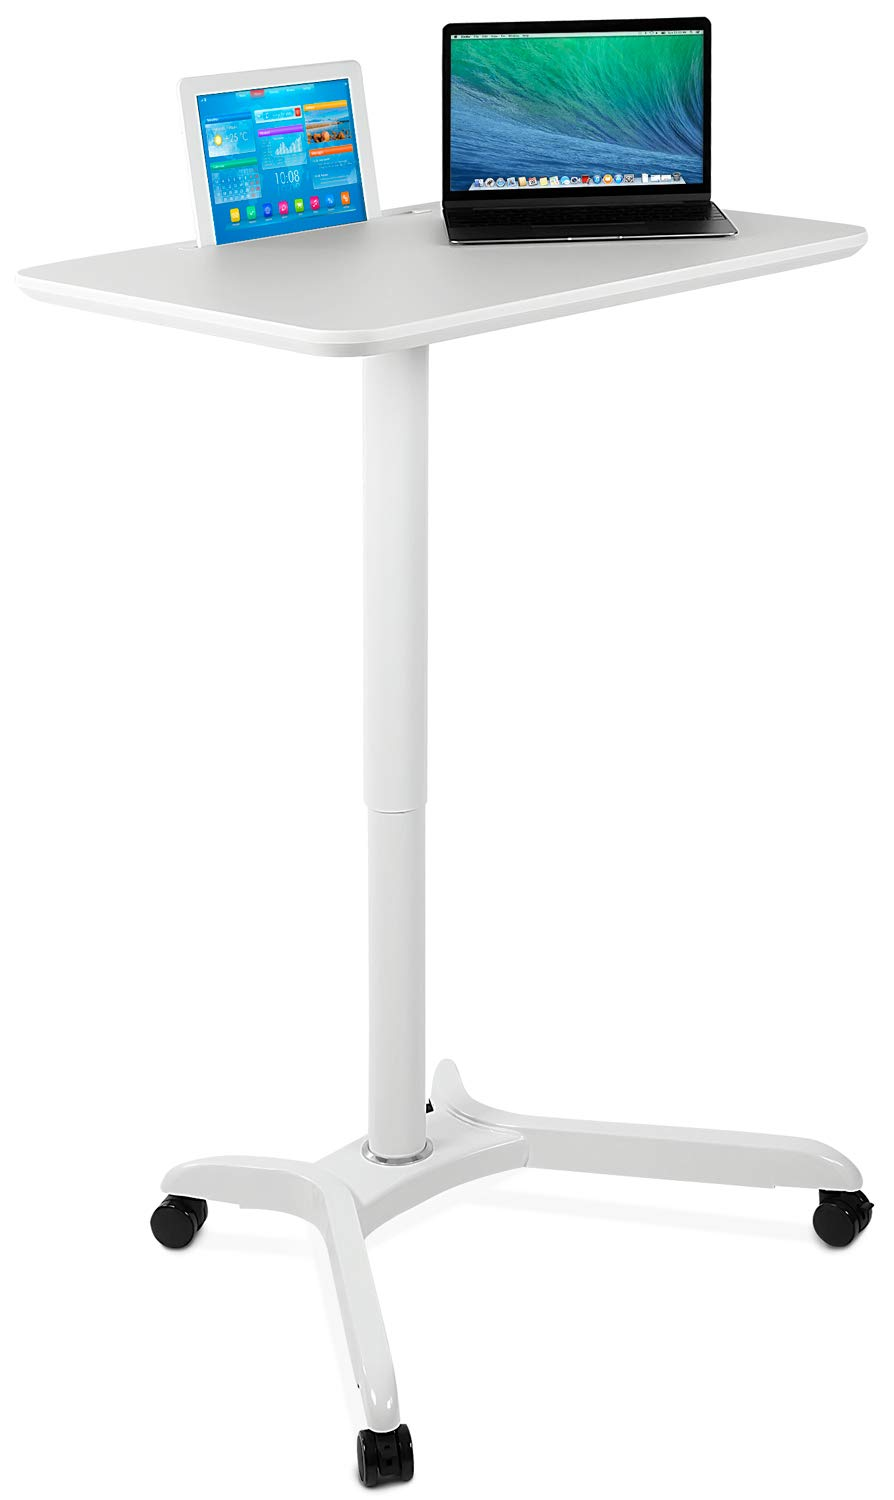 Mount-It! Standing Mobile Laptop Cart, Sit Stand Rolling Desk with Height Adjustable 31.1'' x 20.5'' Platform, Supports up to 17.6 lbs, White